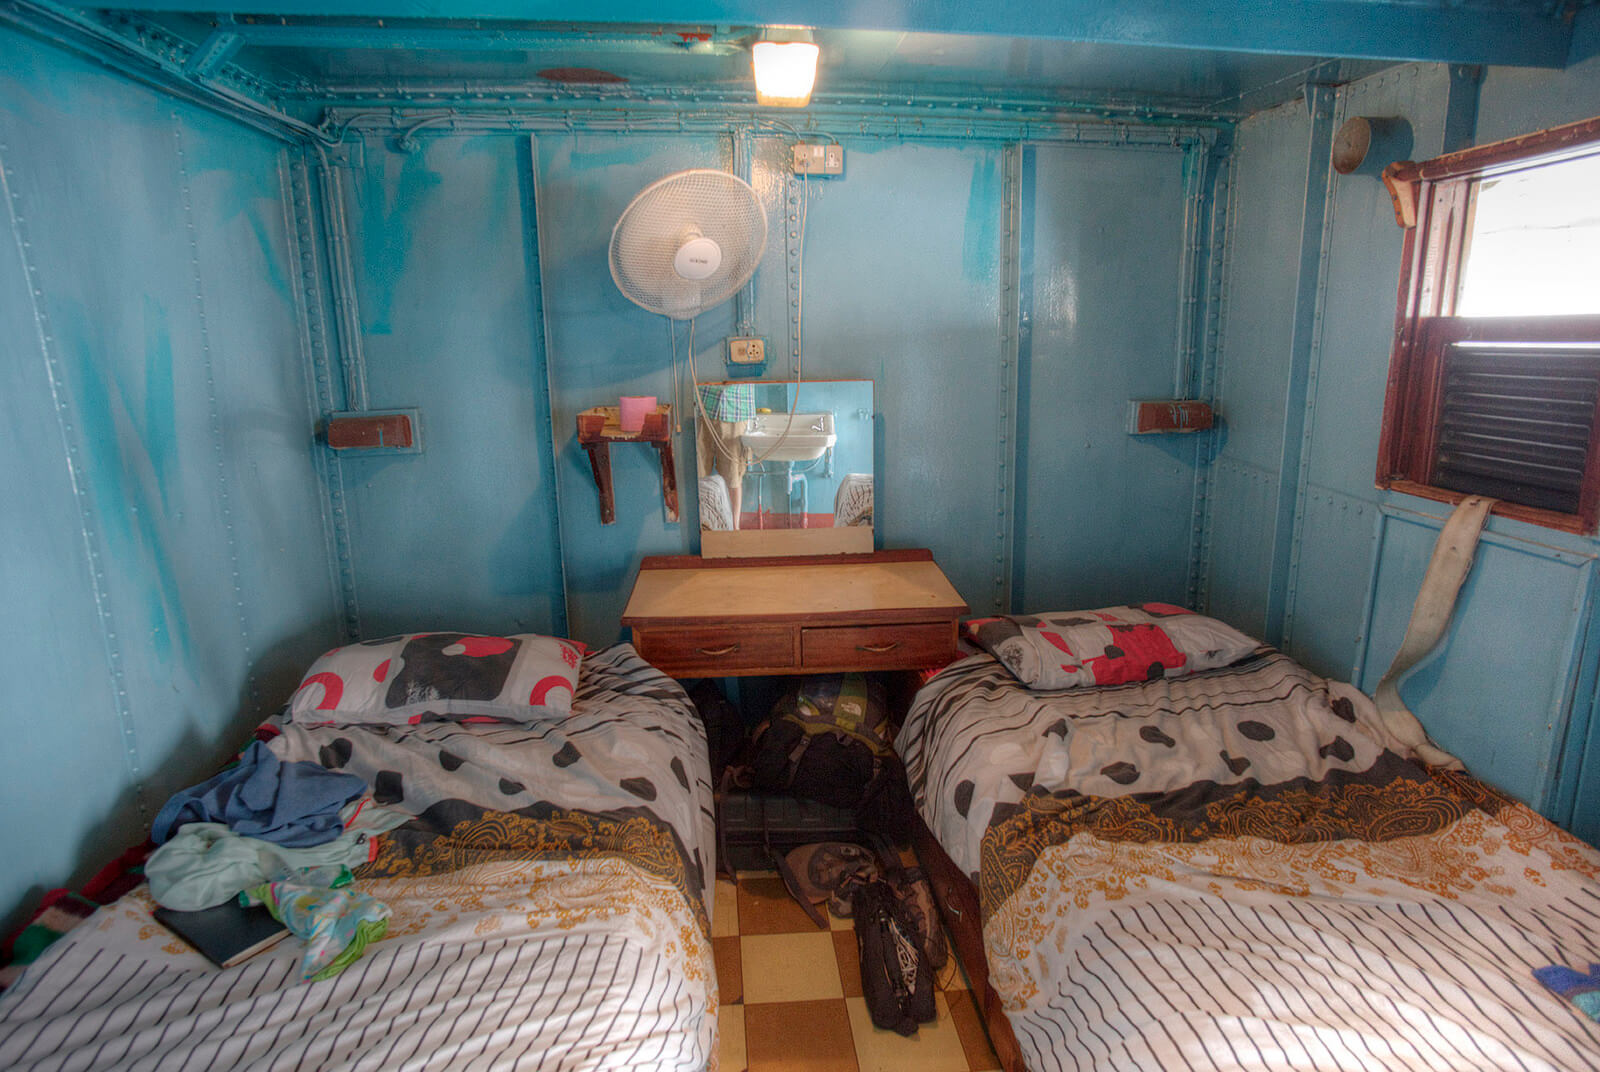 Cabin on the Ilala Ferry in Malawi